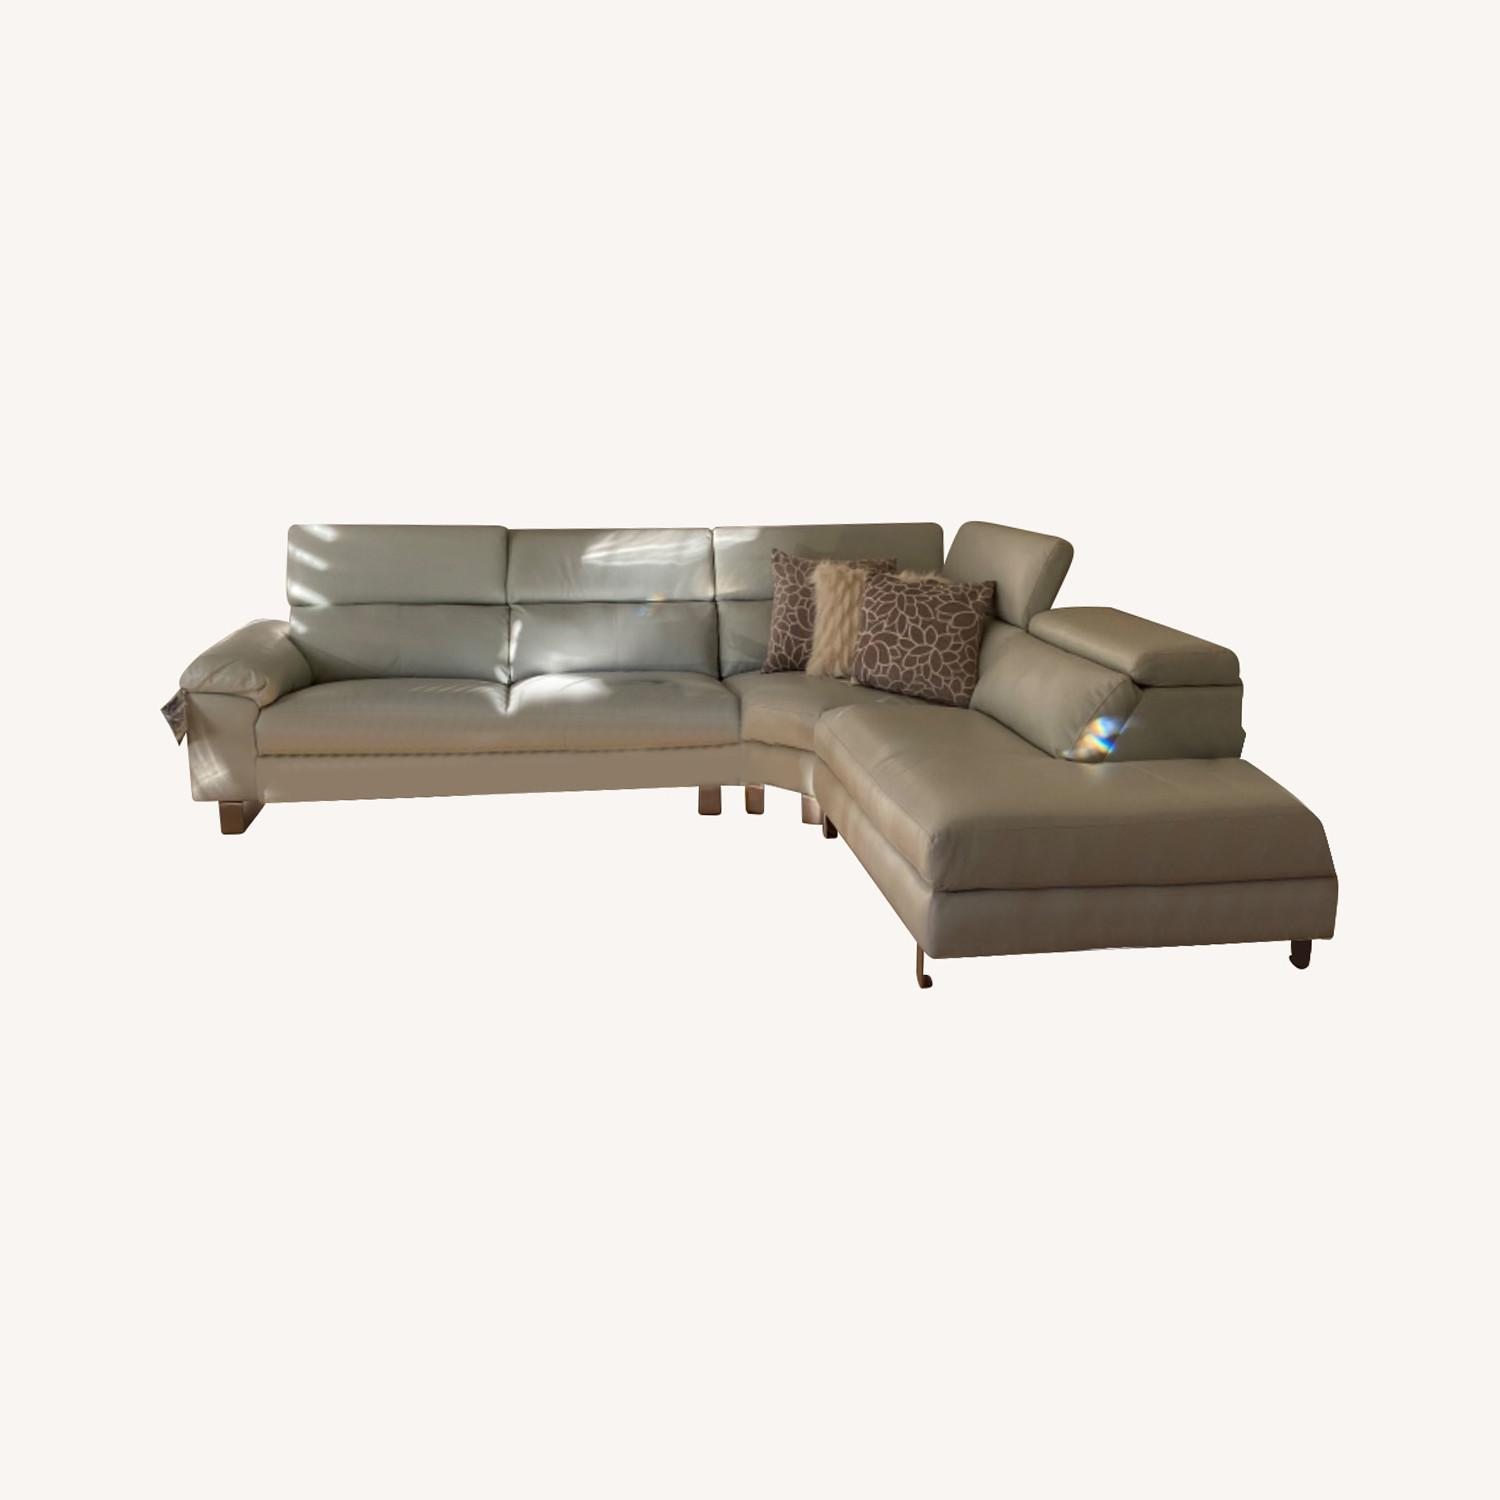 Leather Sectional Sofa Grey - image-0